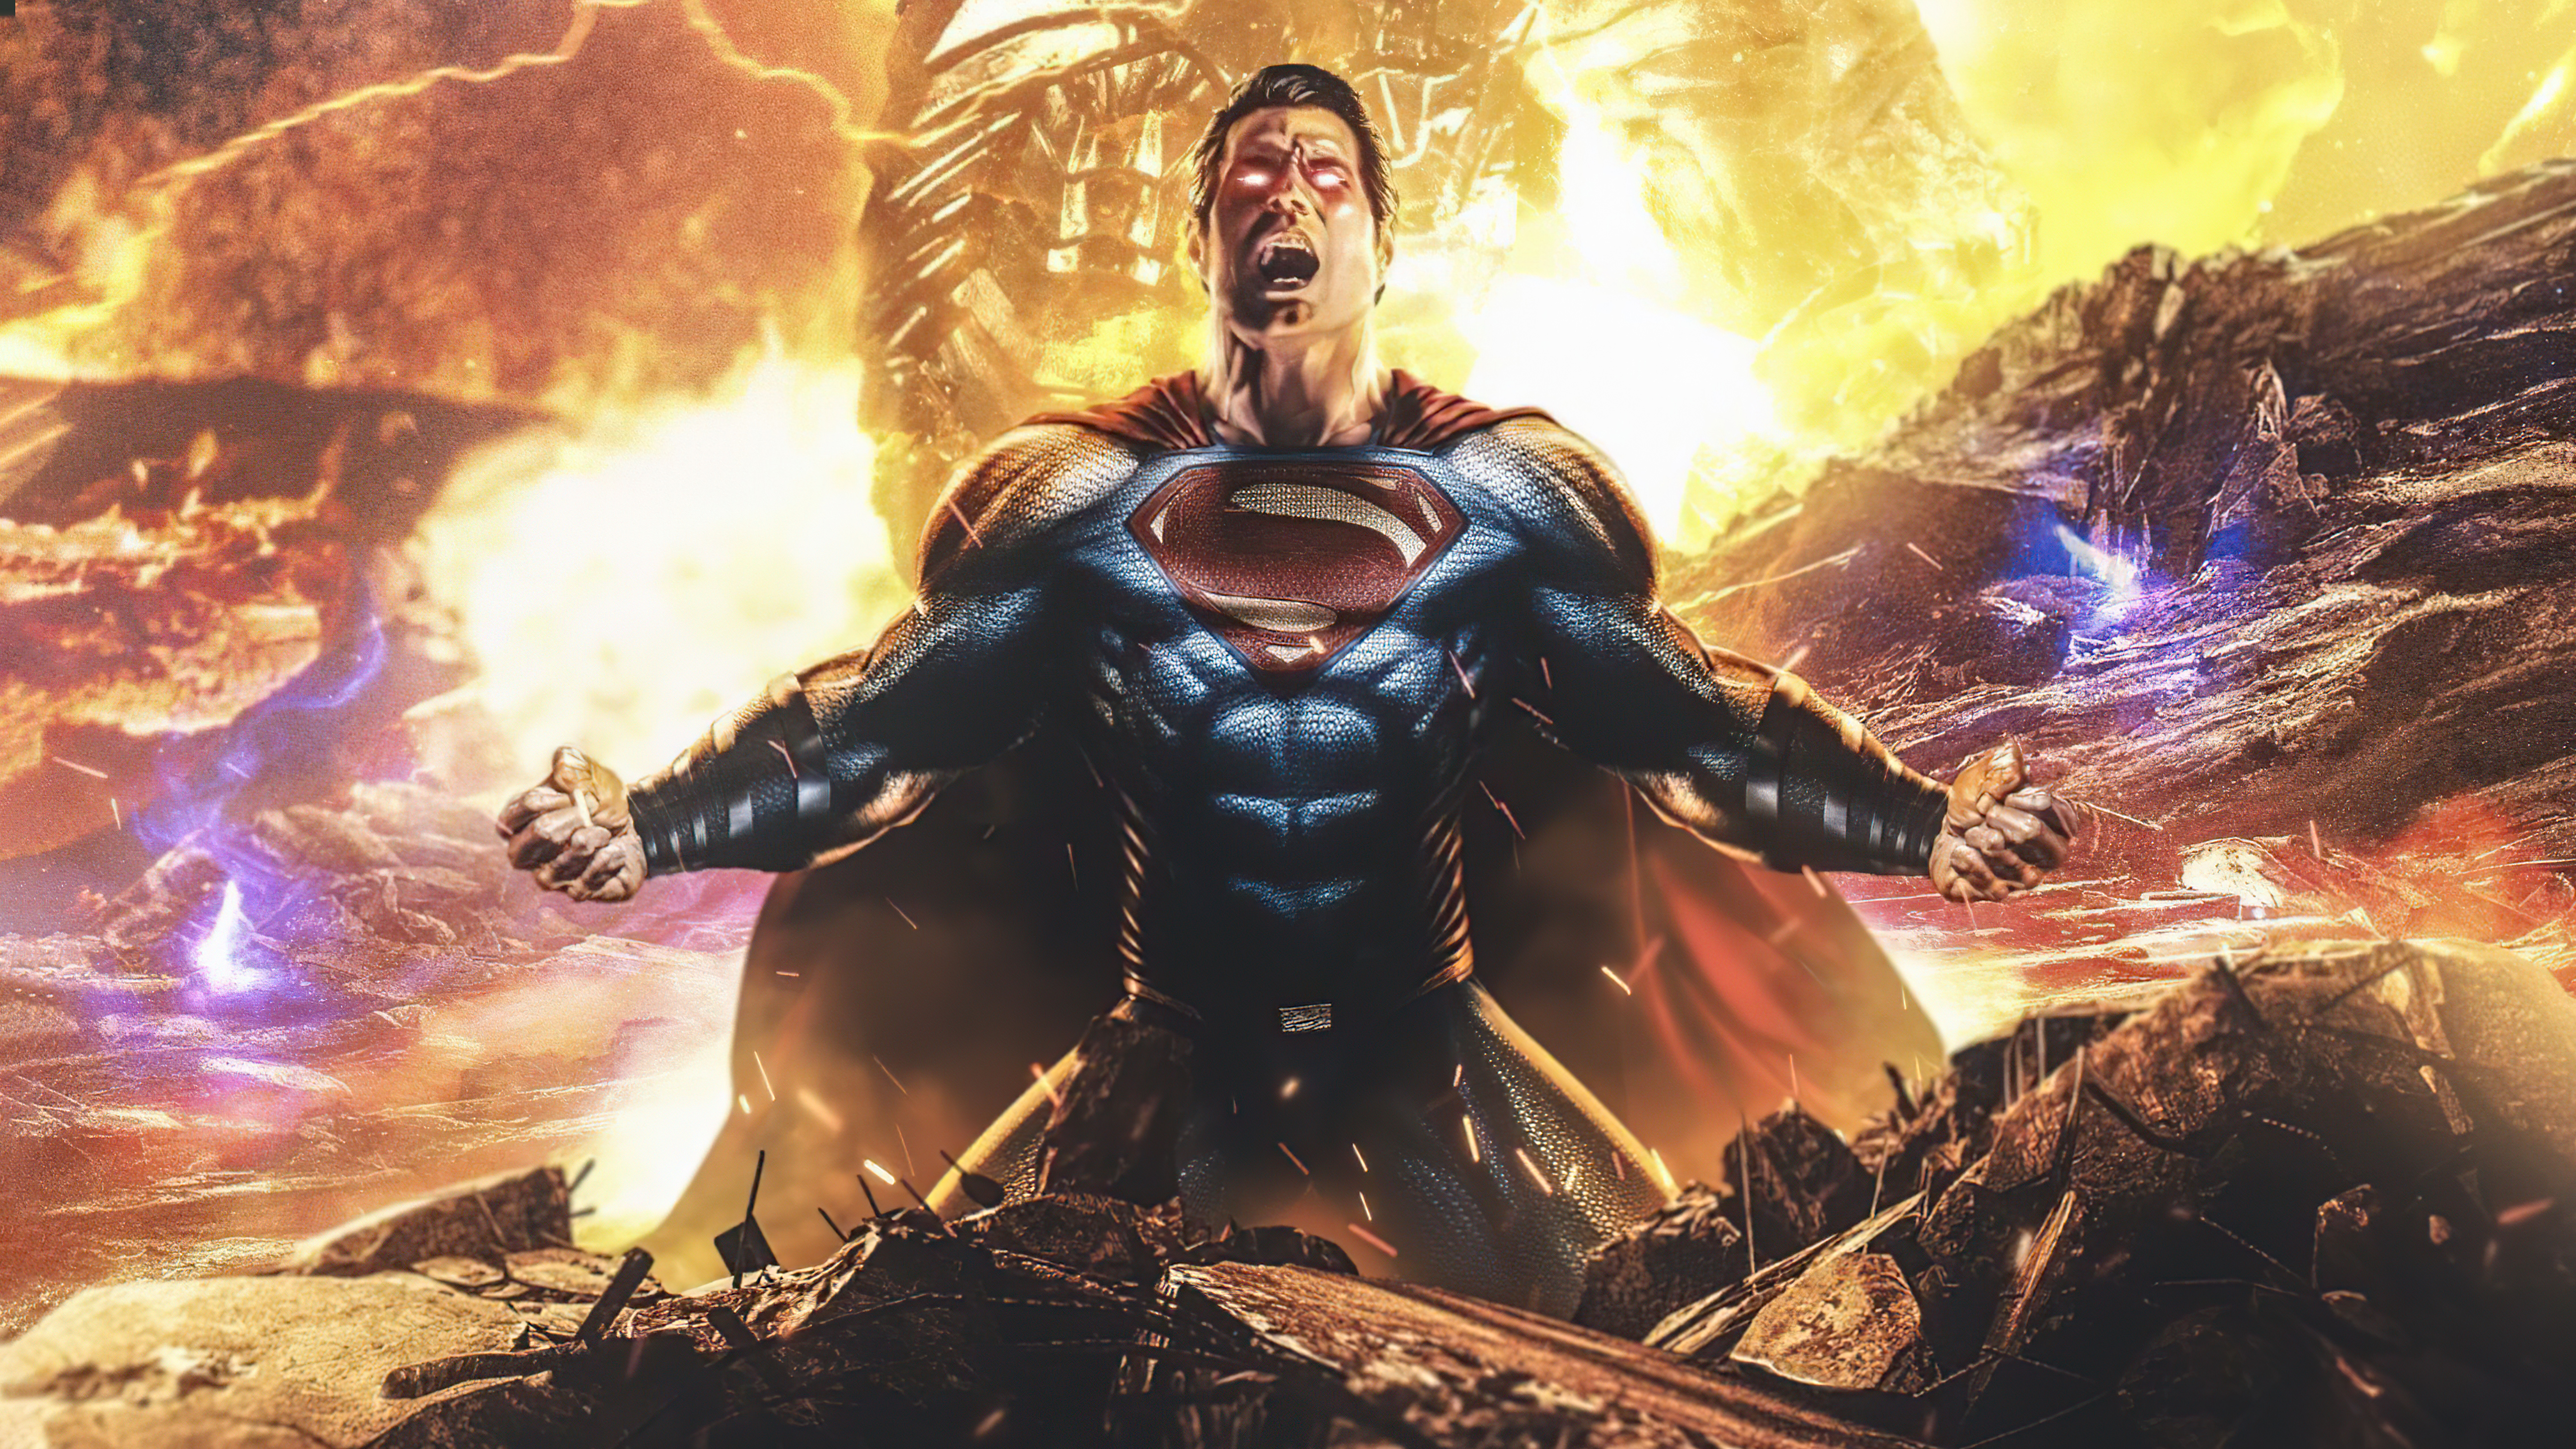 superman and darkseid zack snyders justice league 4k 1618166583 - Superman And Darkseid Zack Snyders Justice League 4k - Superman And Darkseid Zack Snyders Justice League 4k wallpapers